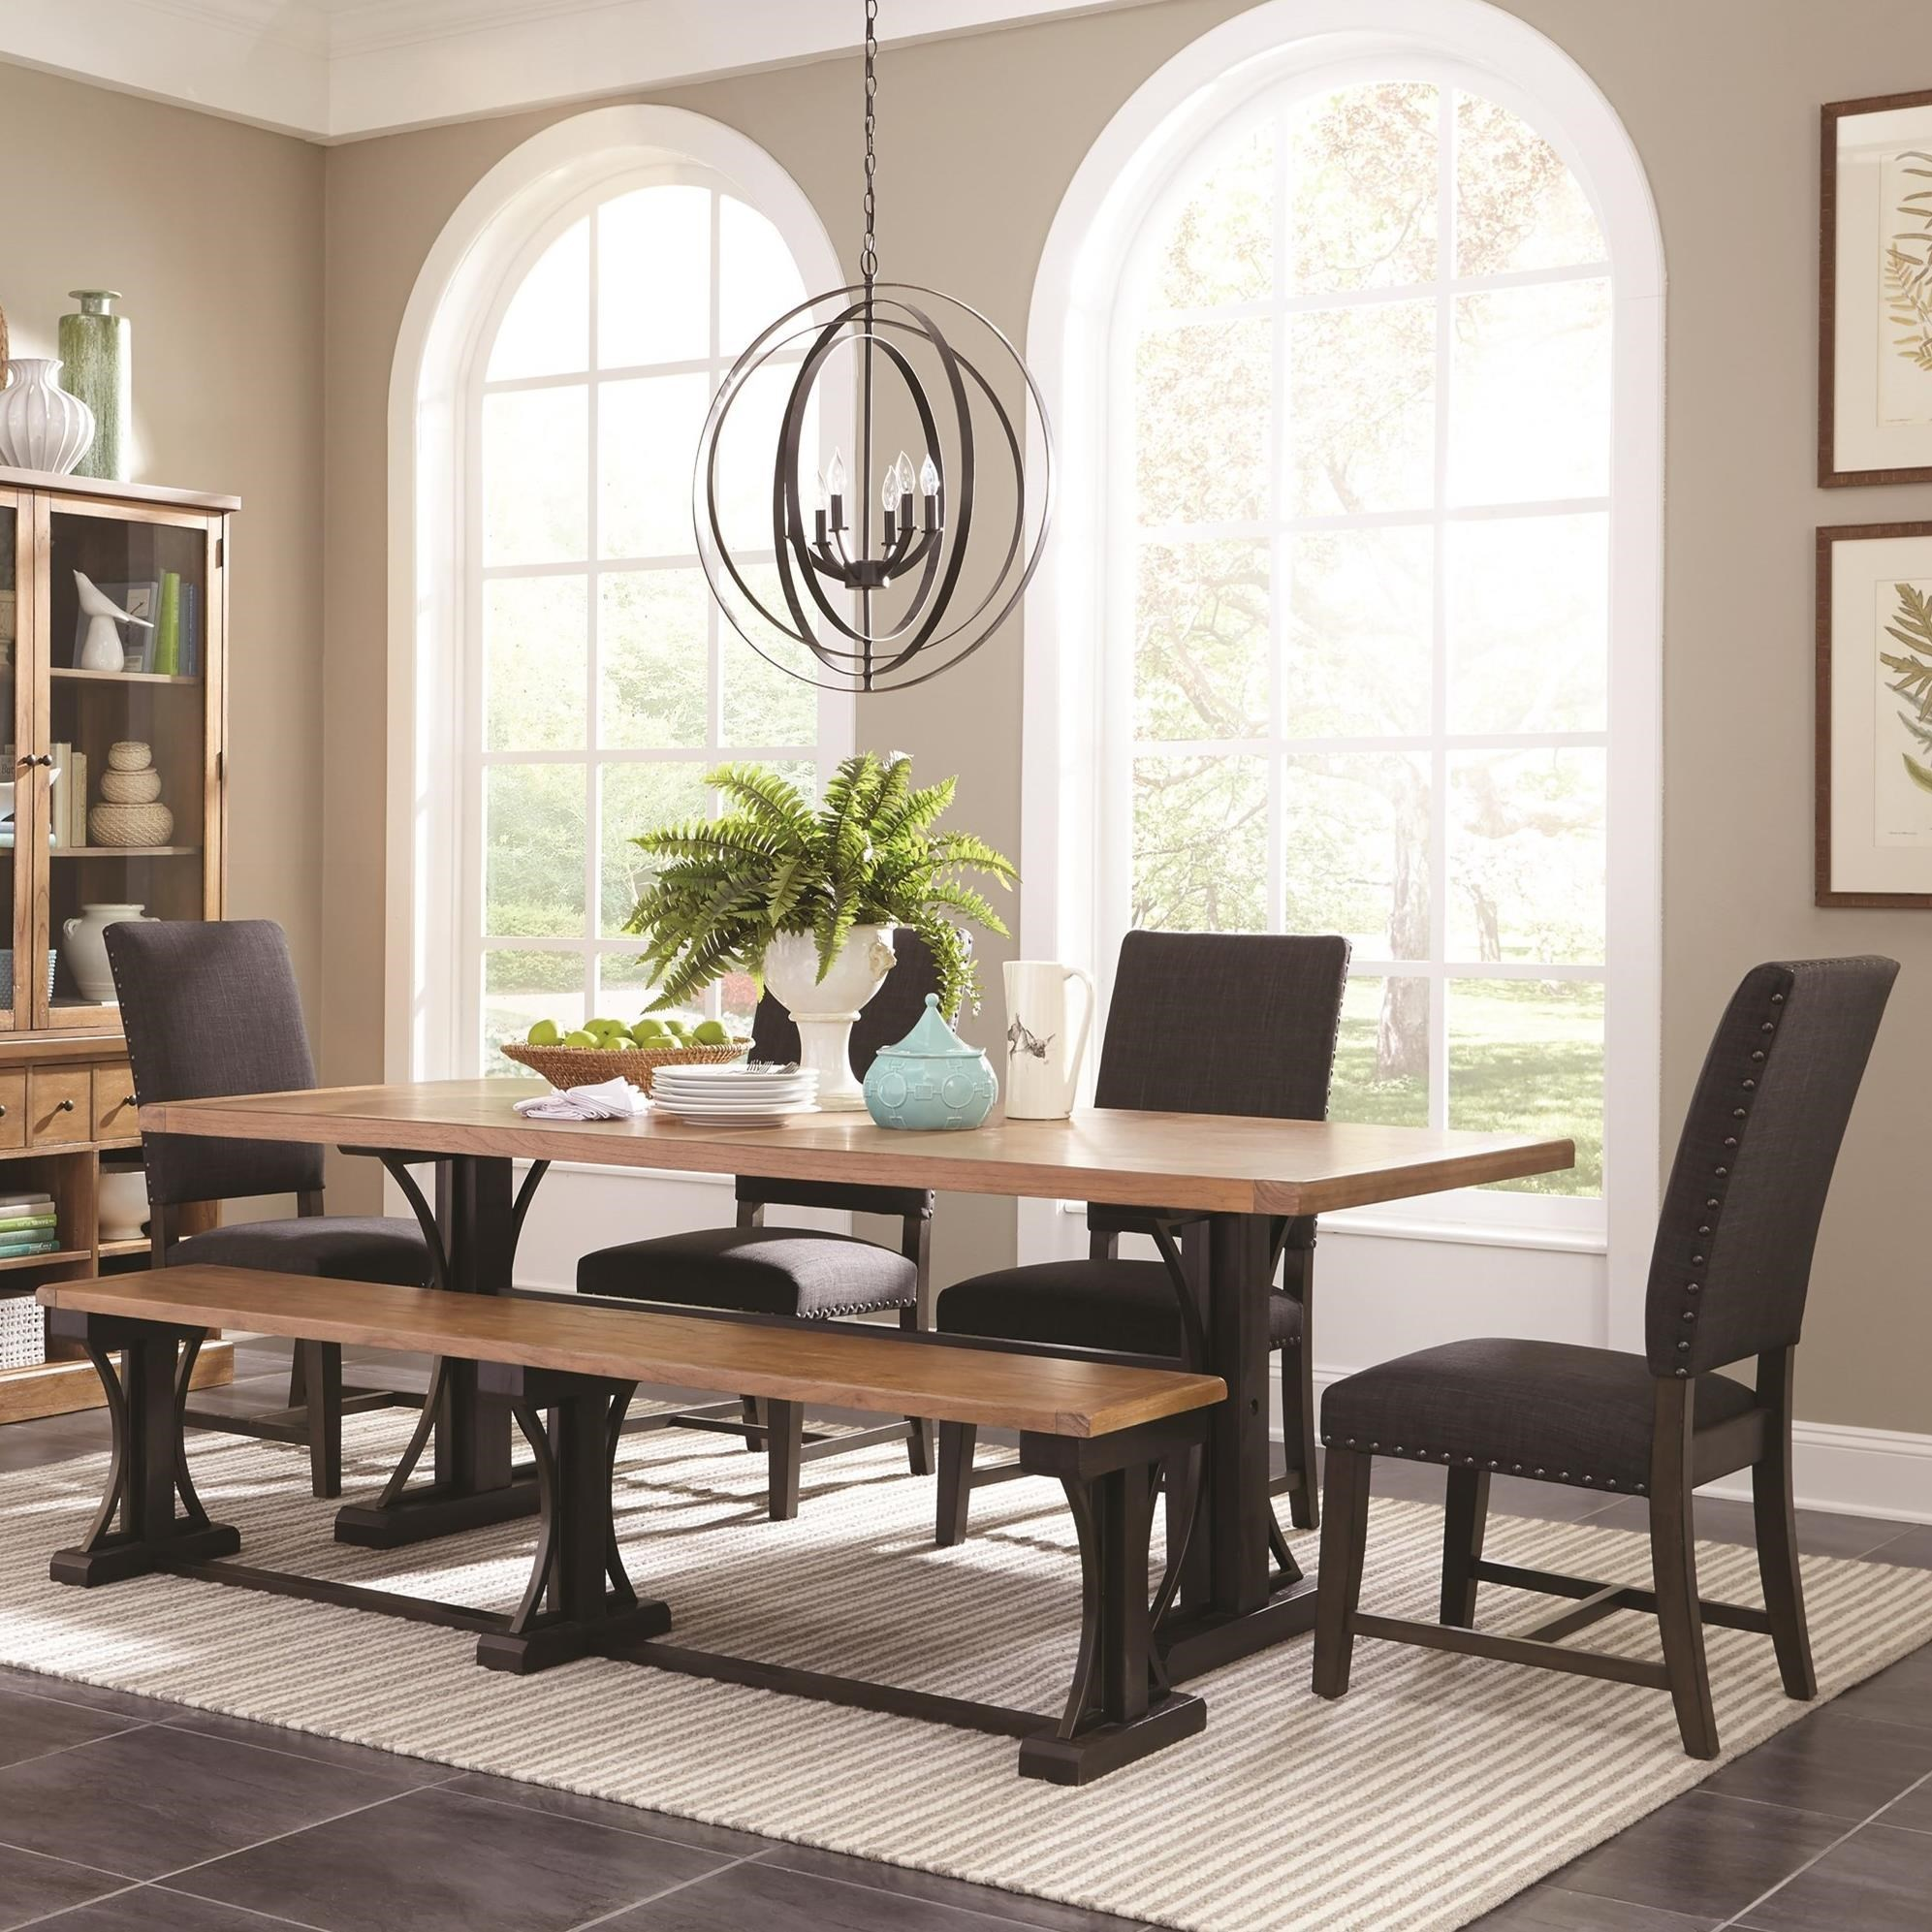 Scott Living Bishop Farmhouse Table Set With Parson Chairs And A Bench    Coaster Fine Furniture